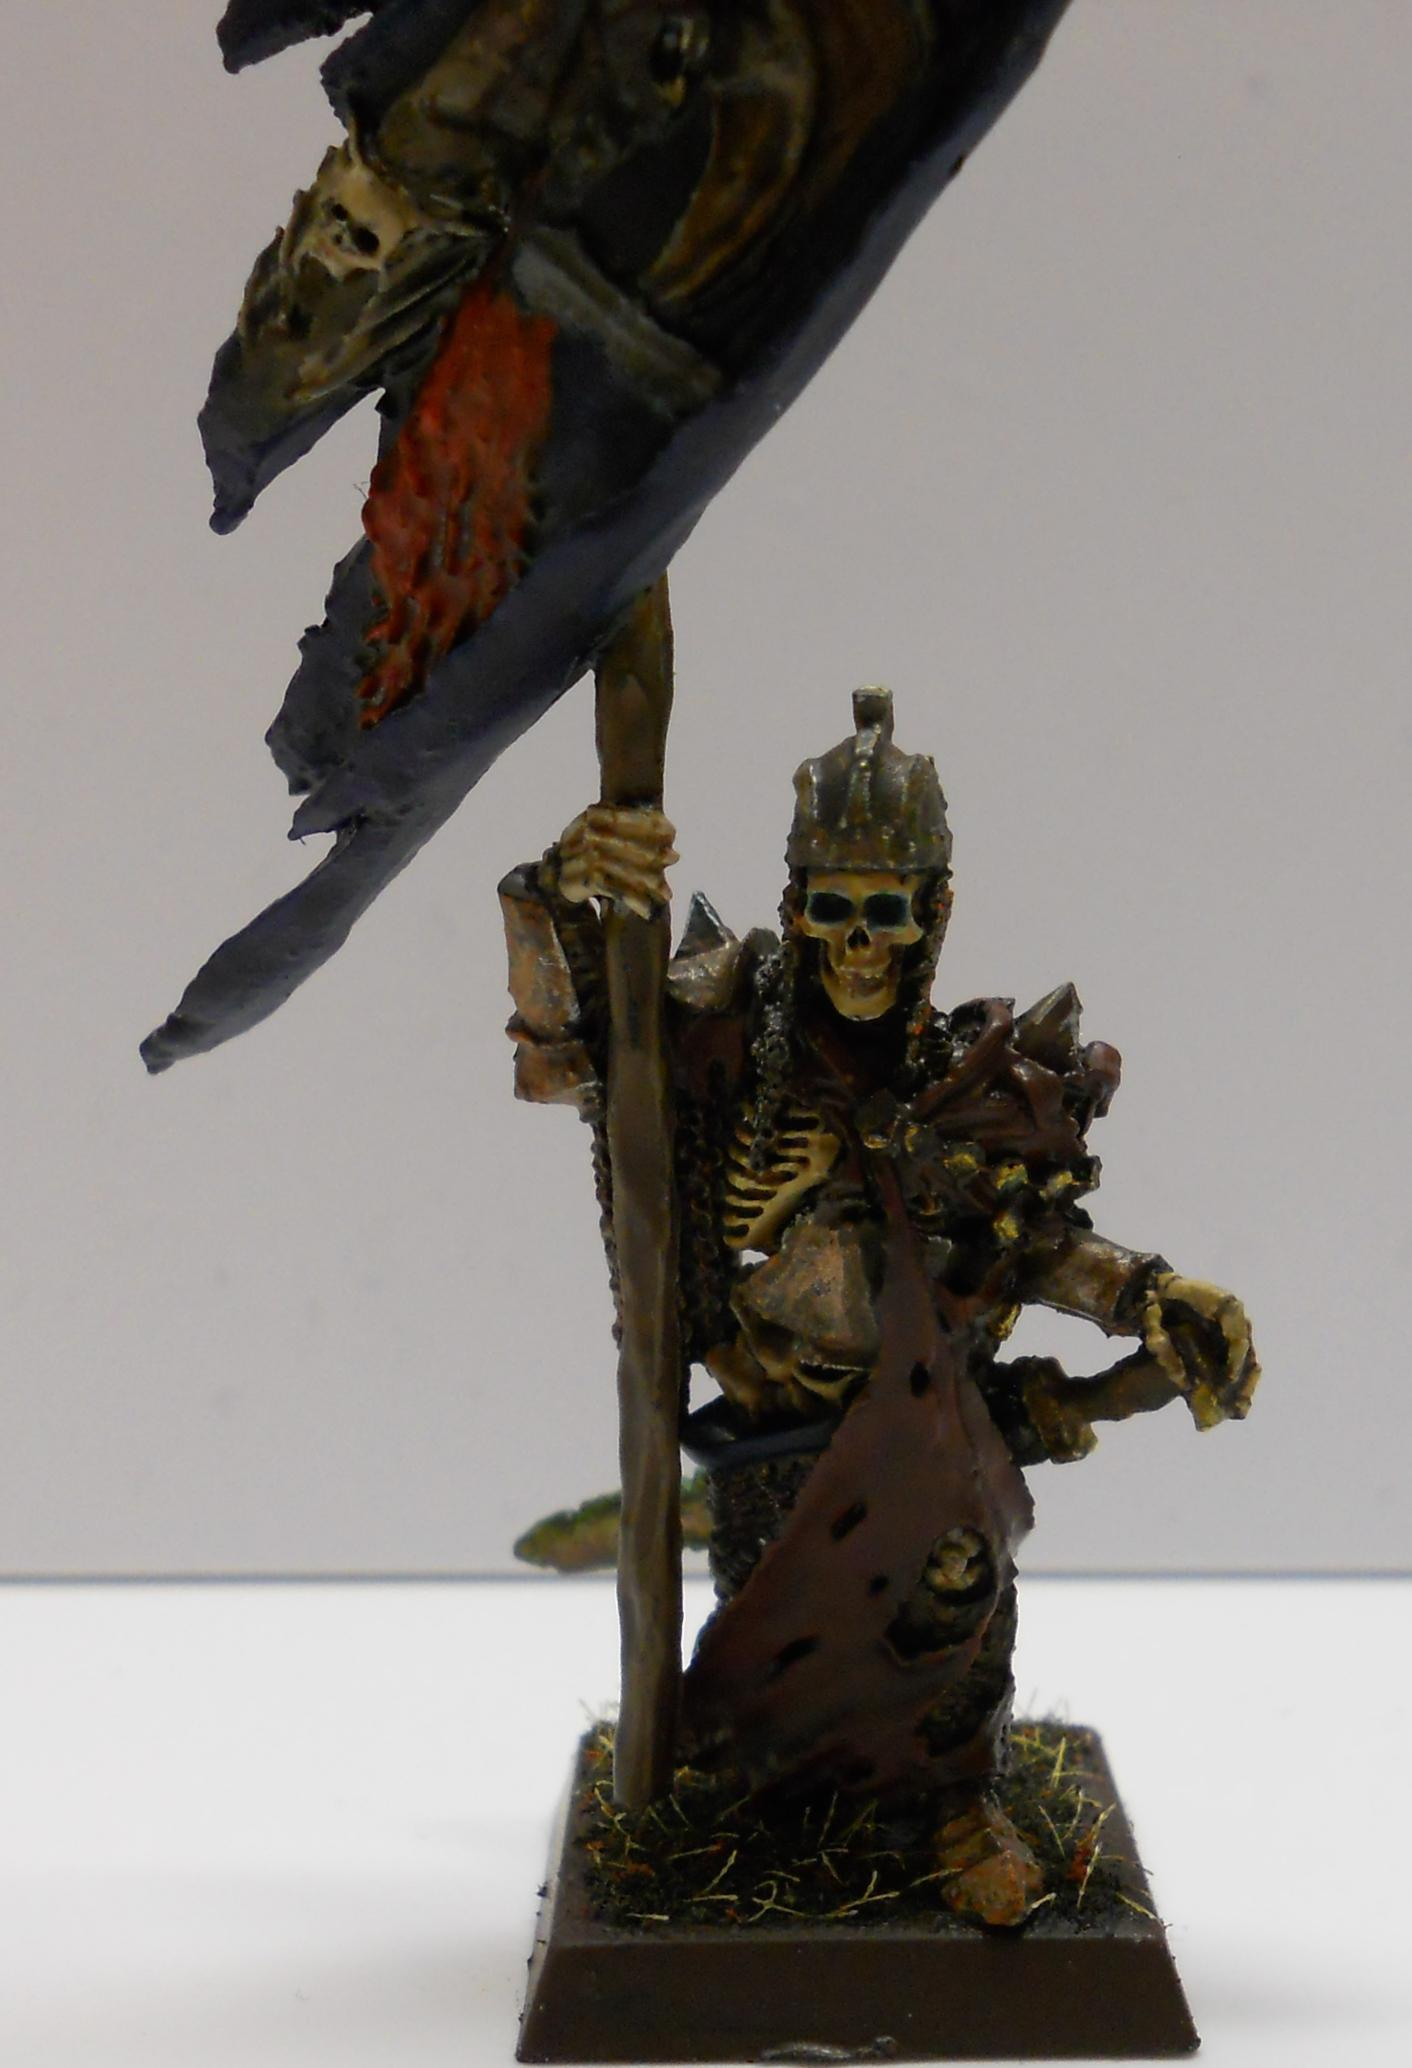 Wight King Battle Standard Bearer